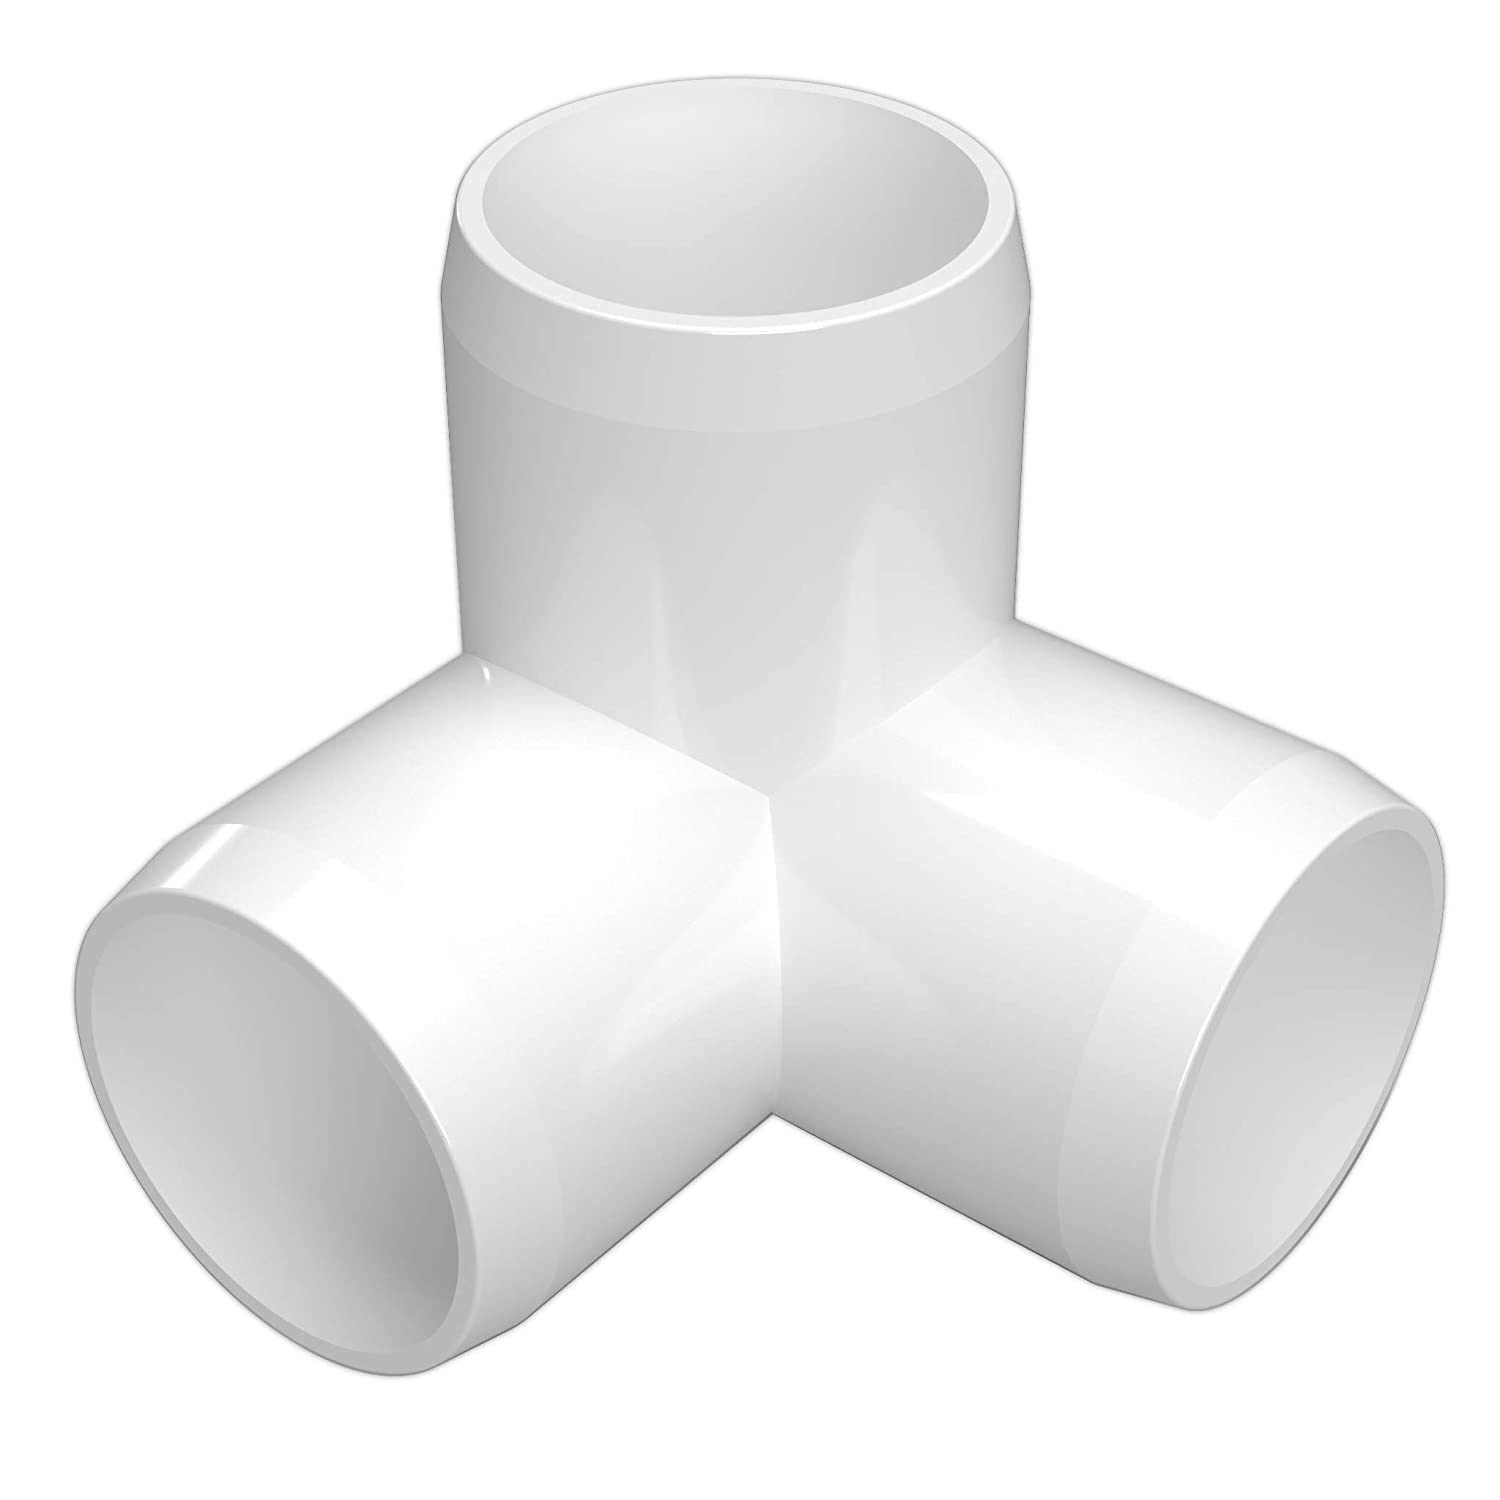 "FORMUFIT F1123WE-WH-4 3-Way Elbow PVC Fitting, Furniture Grade, 1-1/2"" Size, White (Pack of 4)"